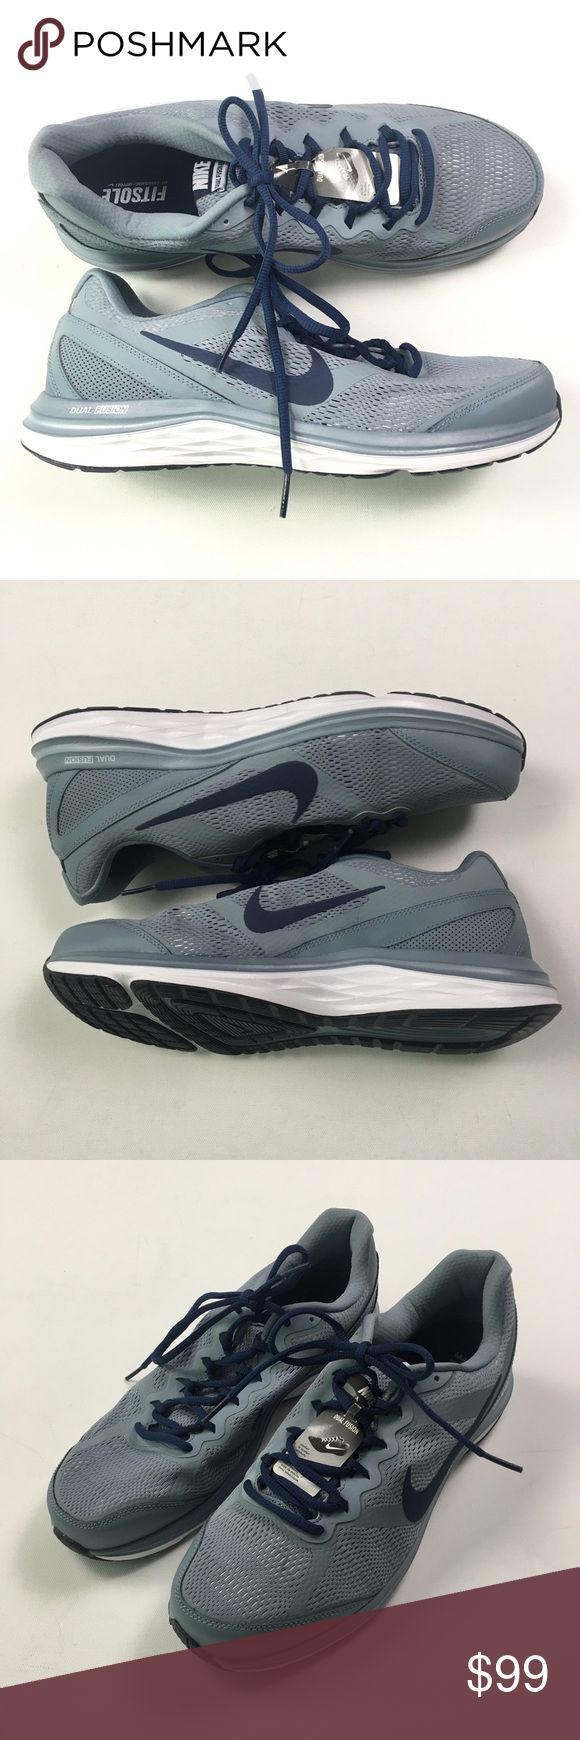 Nike Dual Fusion Run 3 Sz L12 R11 Brand new size mismatch.   Nike Dual Fusion Run 3 Sz L12 R11 Nike Shoes Athletic Shoes